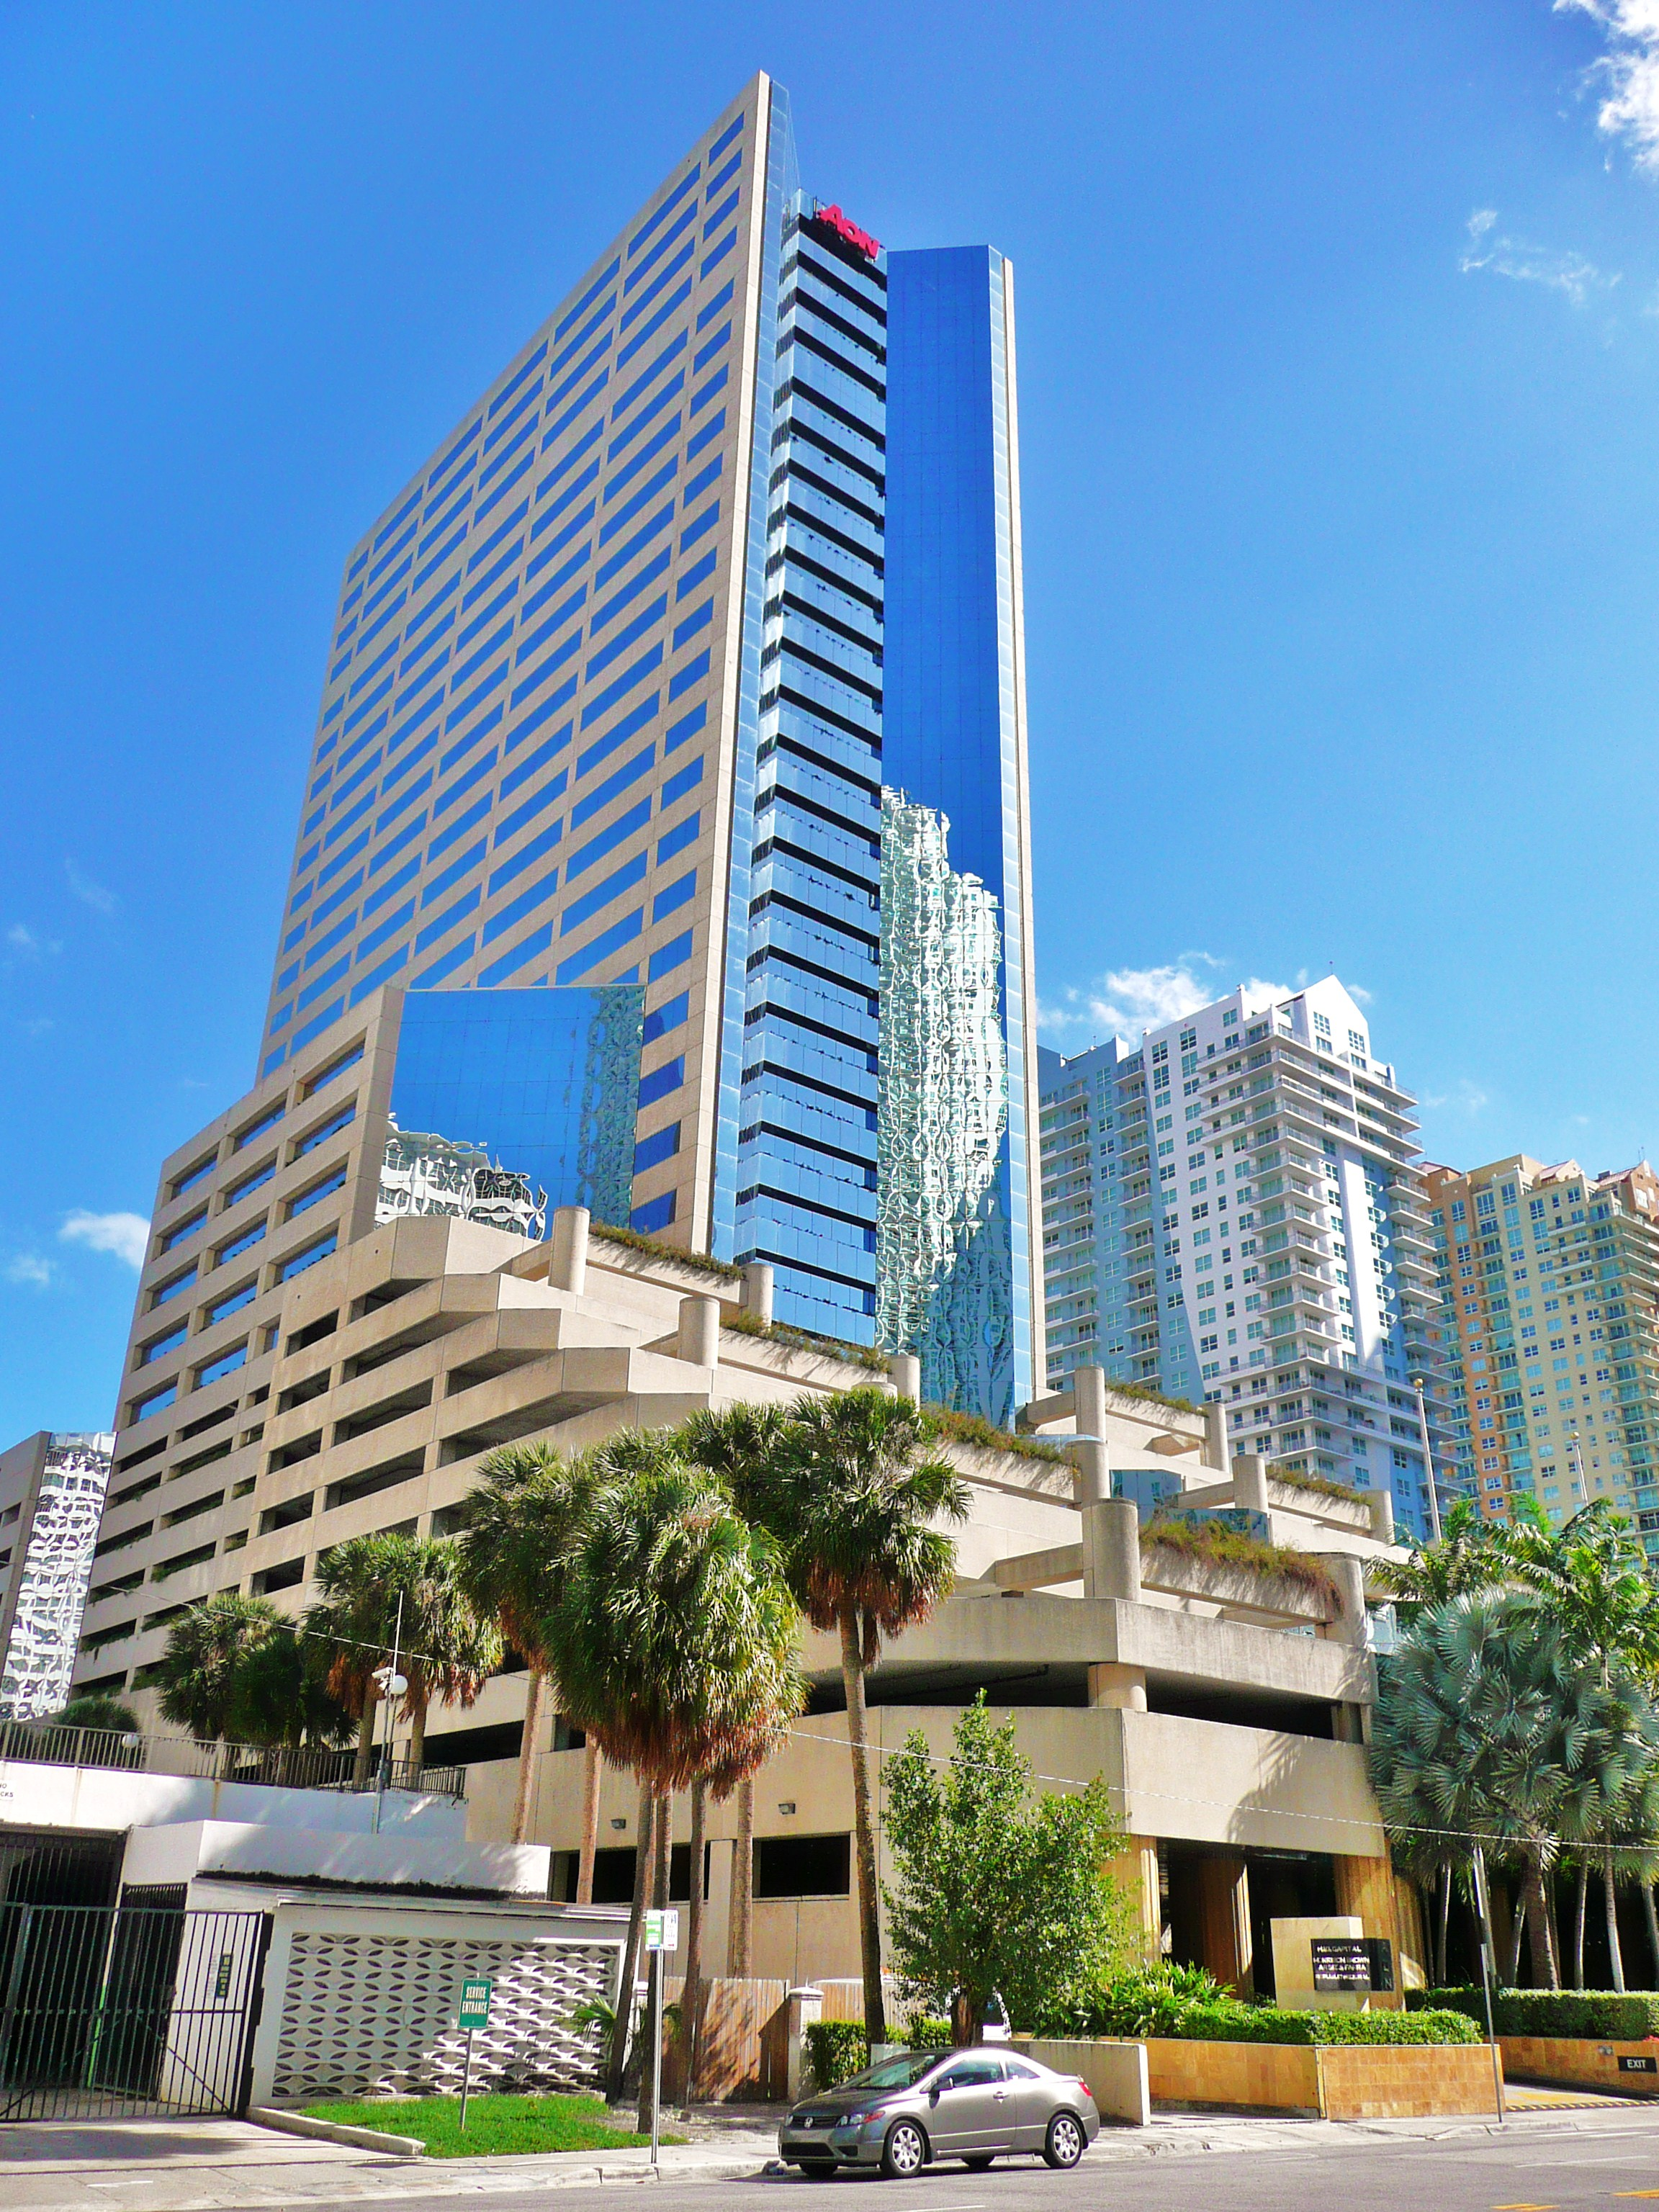 Best Buildings To Live In Downtown Miami